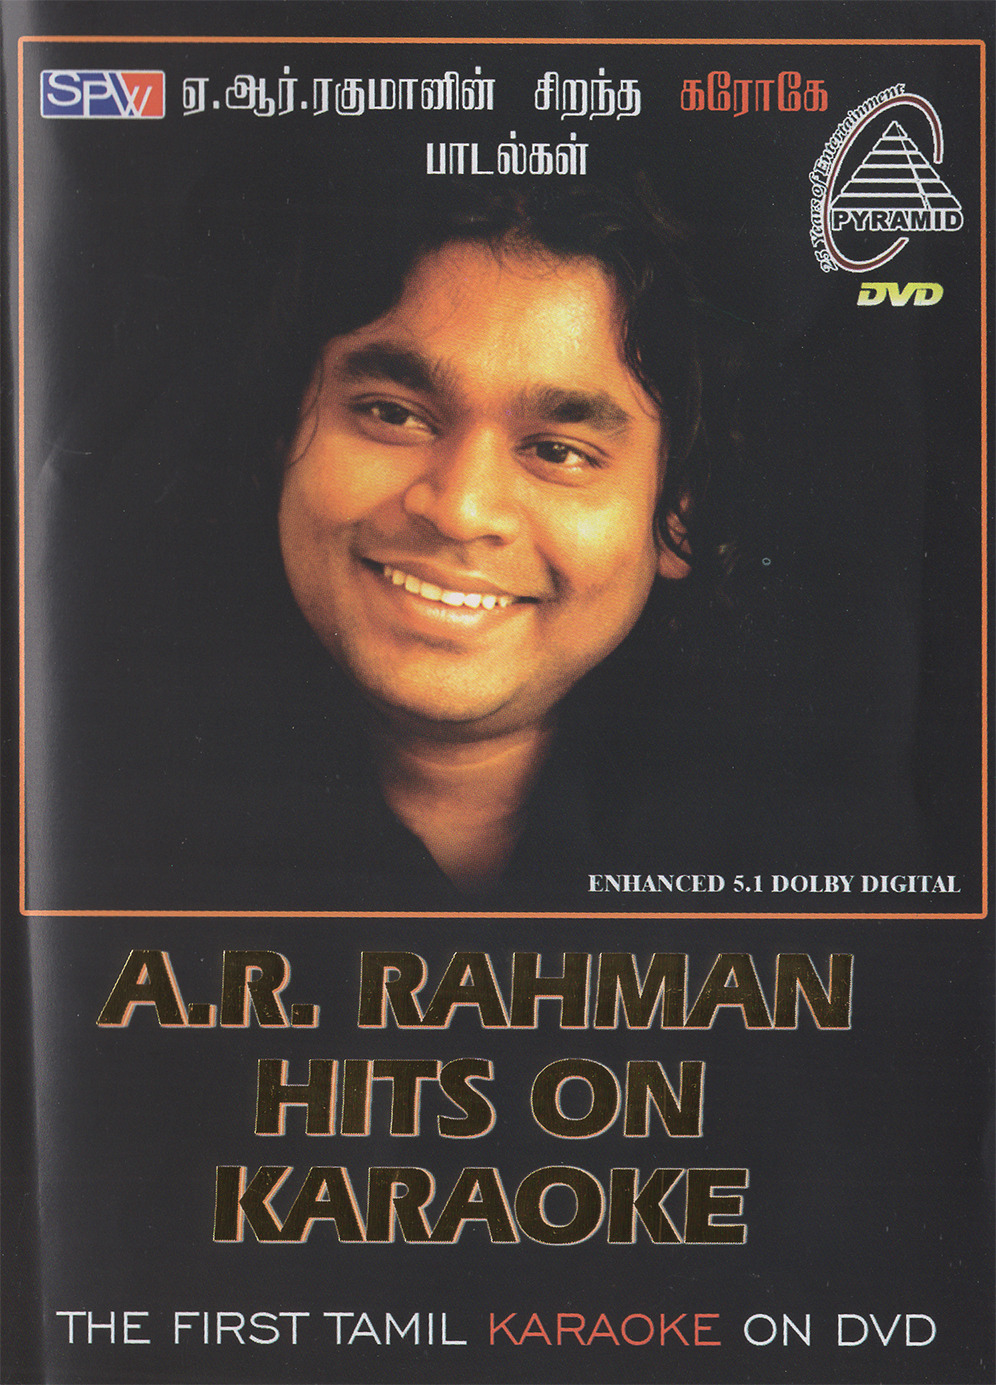 A.R.Rahman Hits On Karaoke